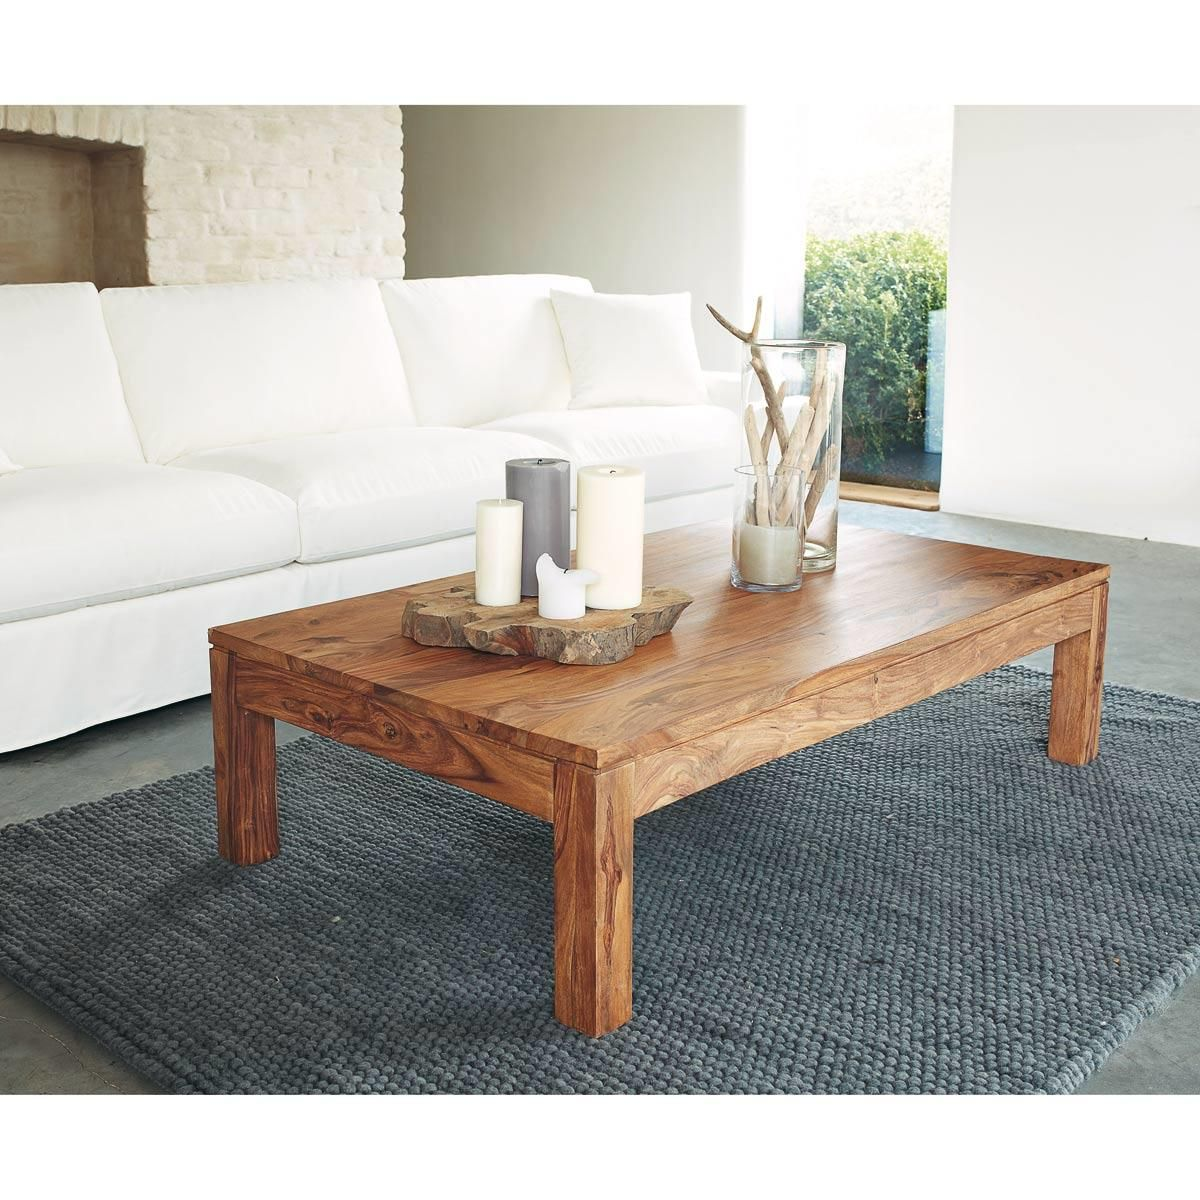 Tapis Gris Anthracite Industry 140x200 Table Basse Table Basse Rectangulaire Table Basse Bois